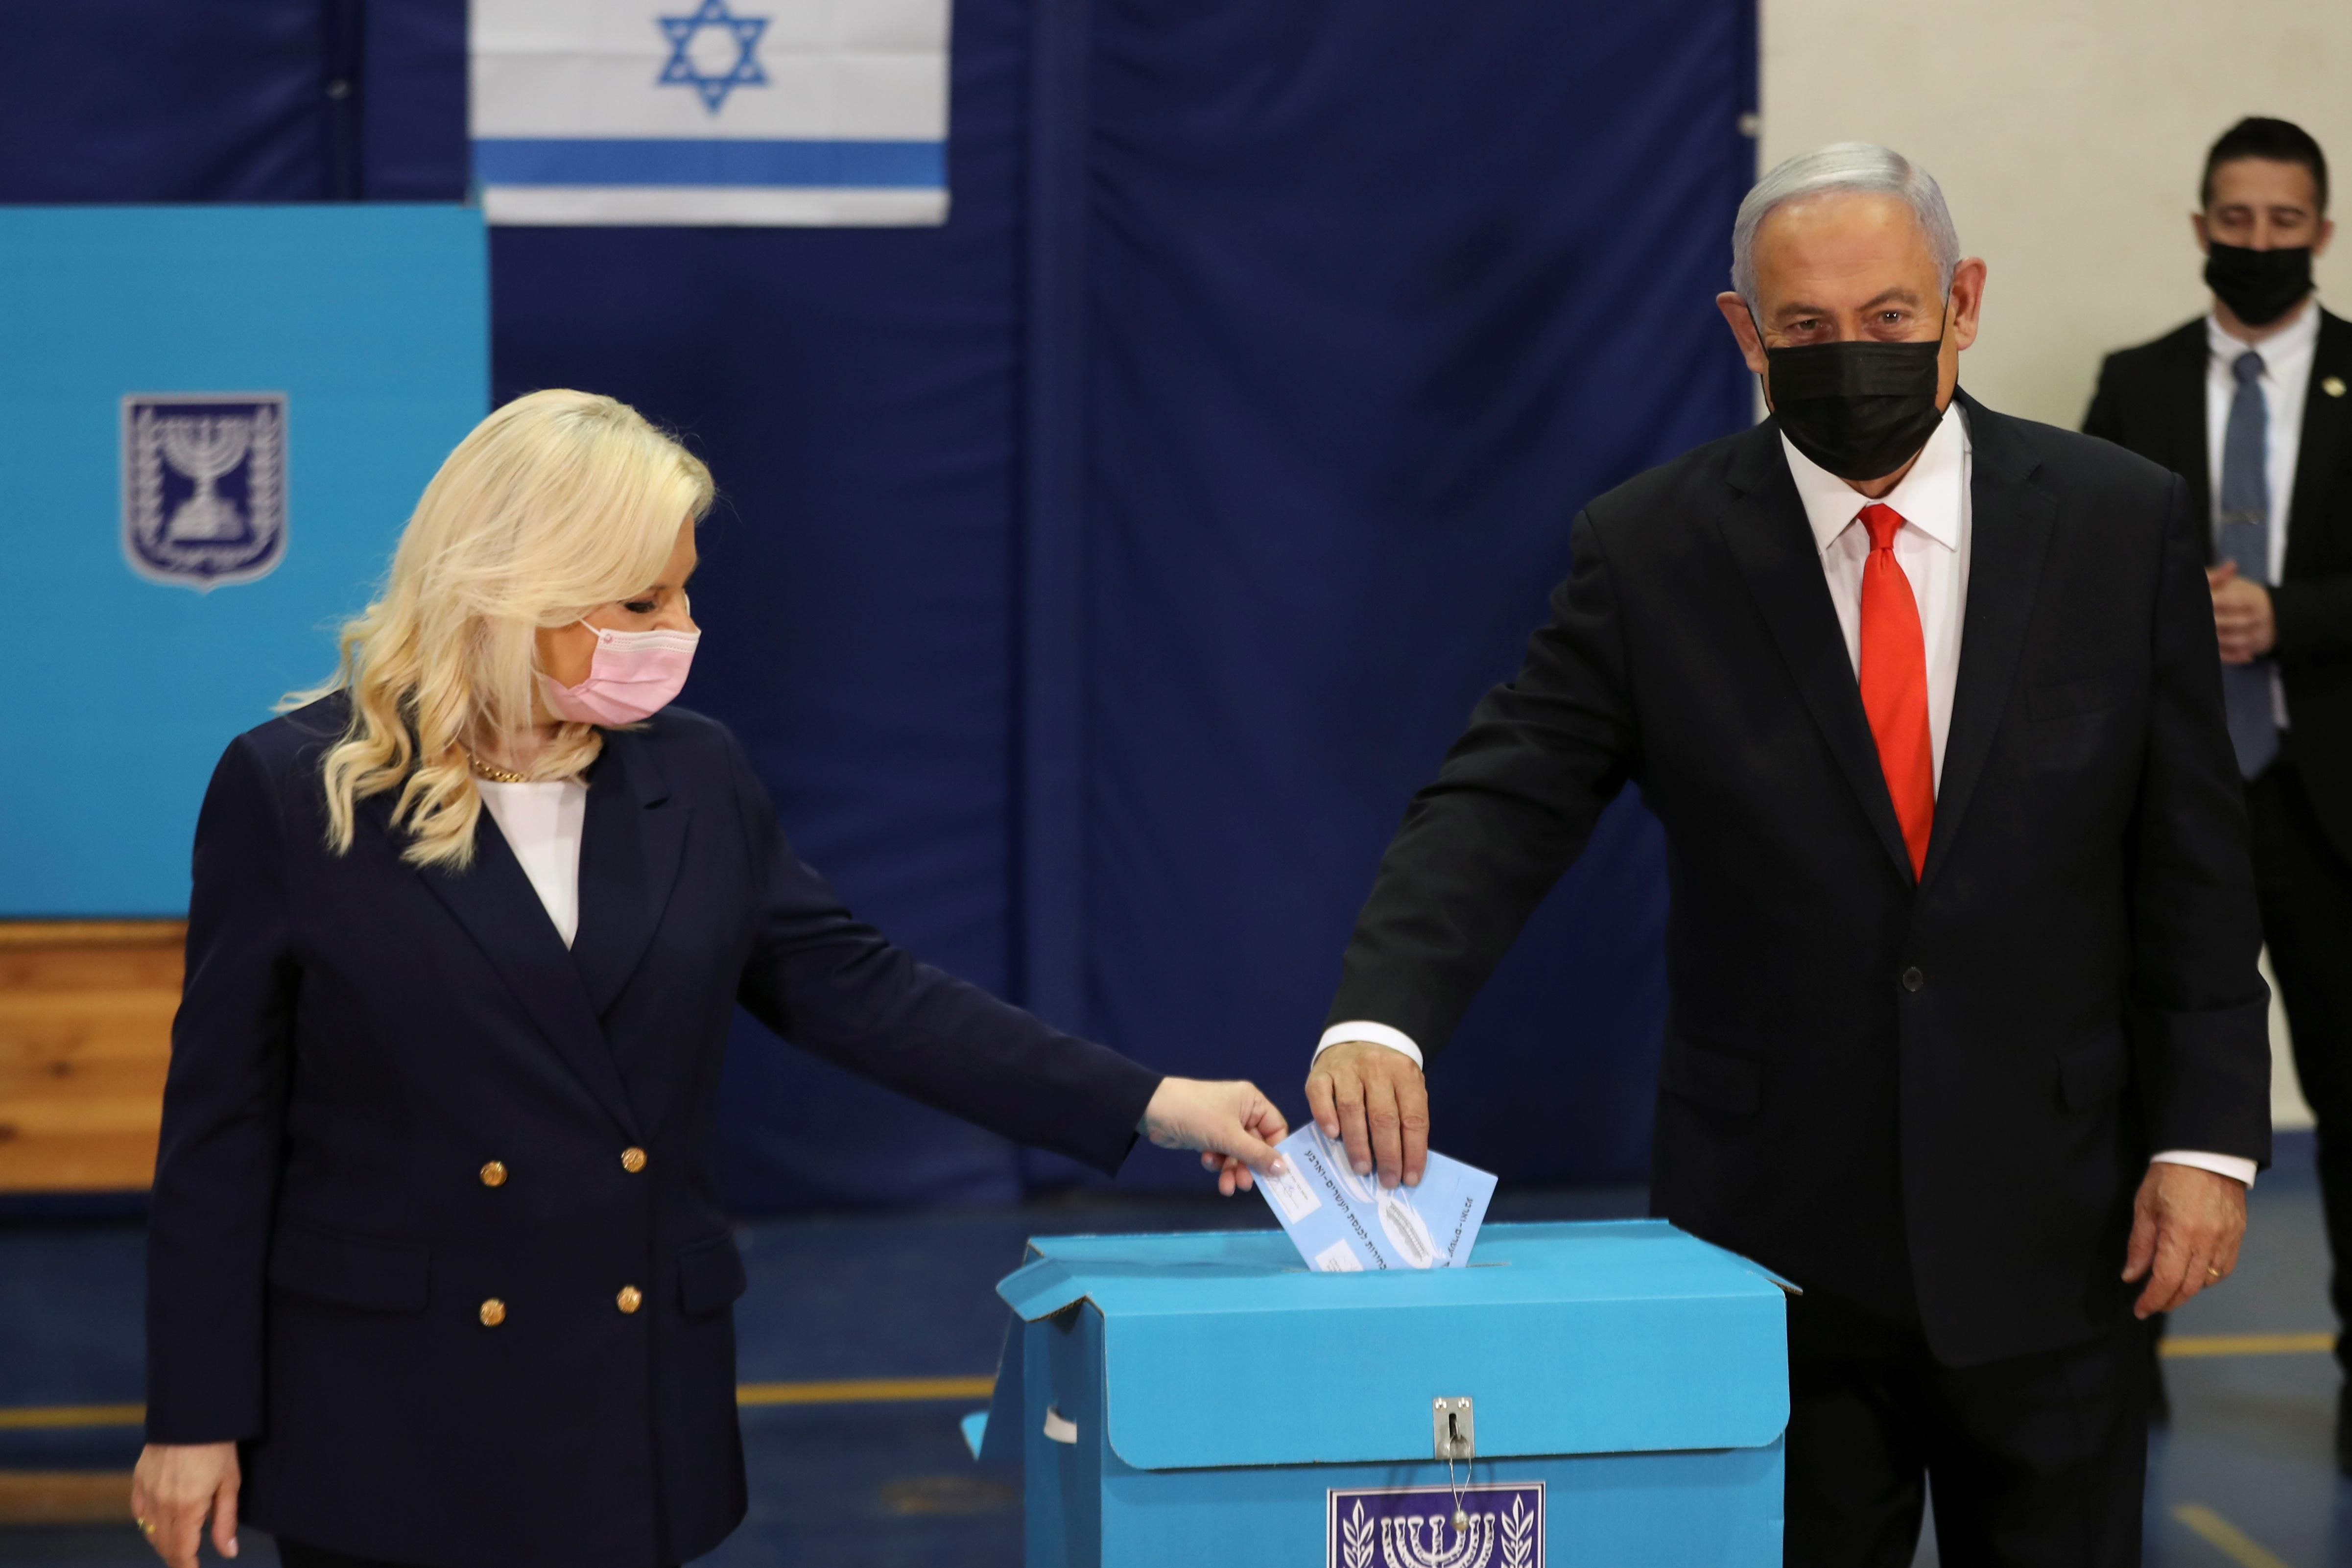 Israeli Prime Minister Benjamin Netanyahu and his wife Sara cast their ballots in Israel's general election, at a polling station in Jerusalem March 23, 2021